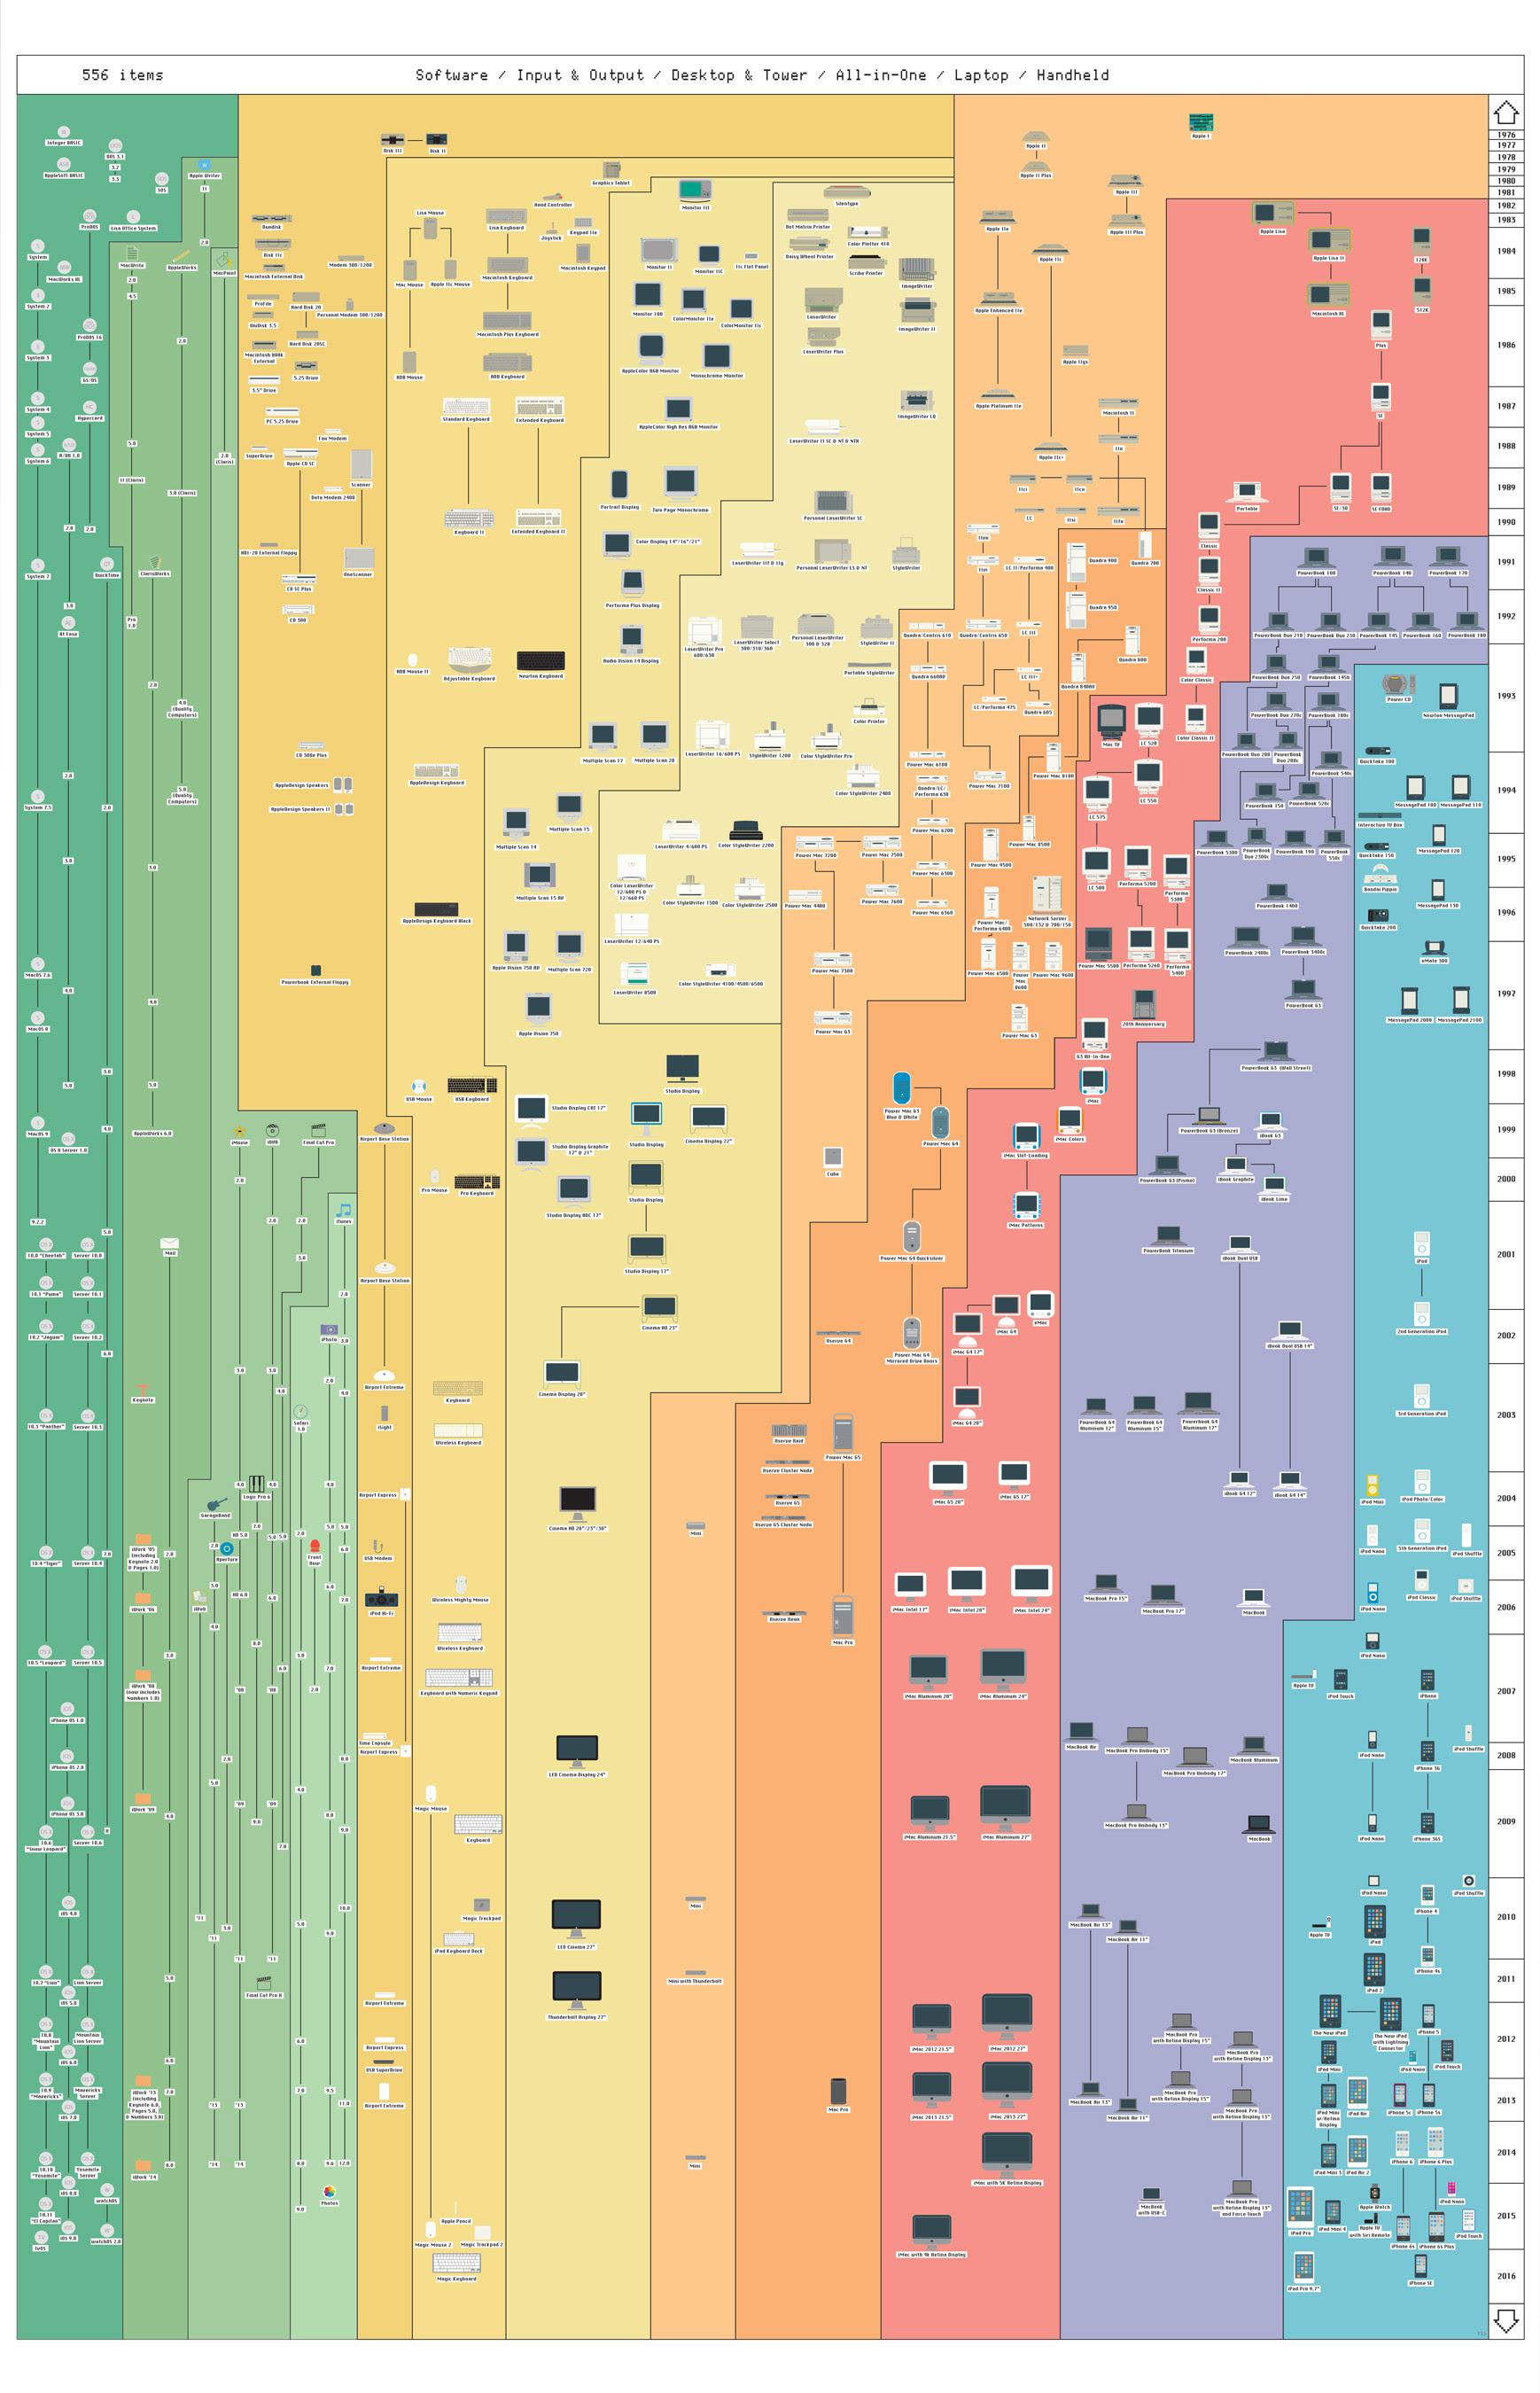 History of Apple Products (source in comments)